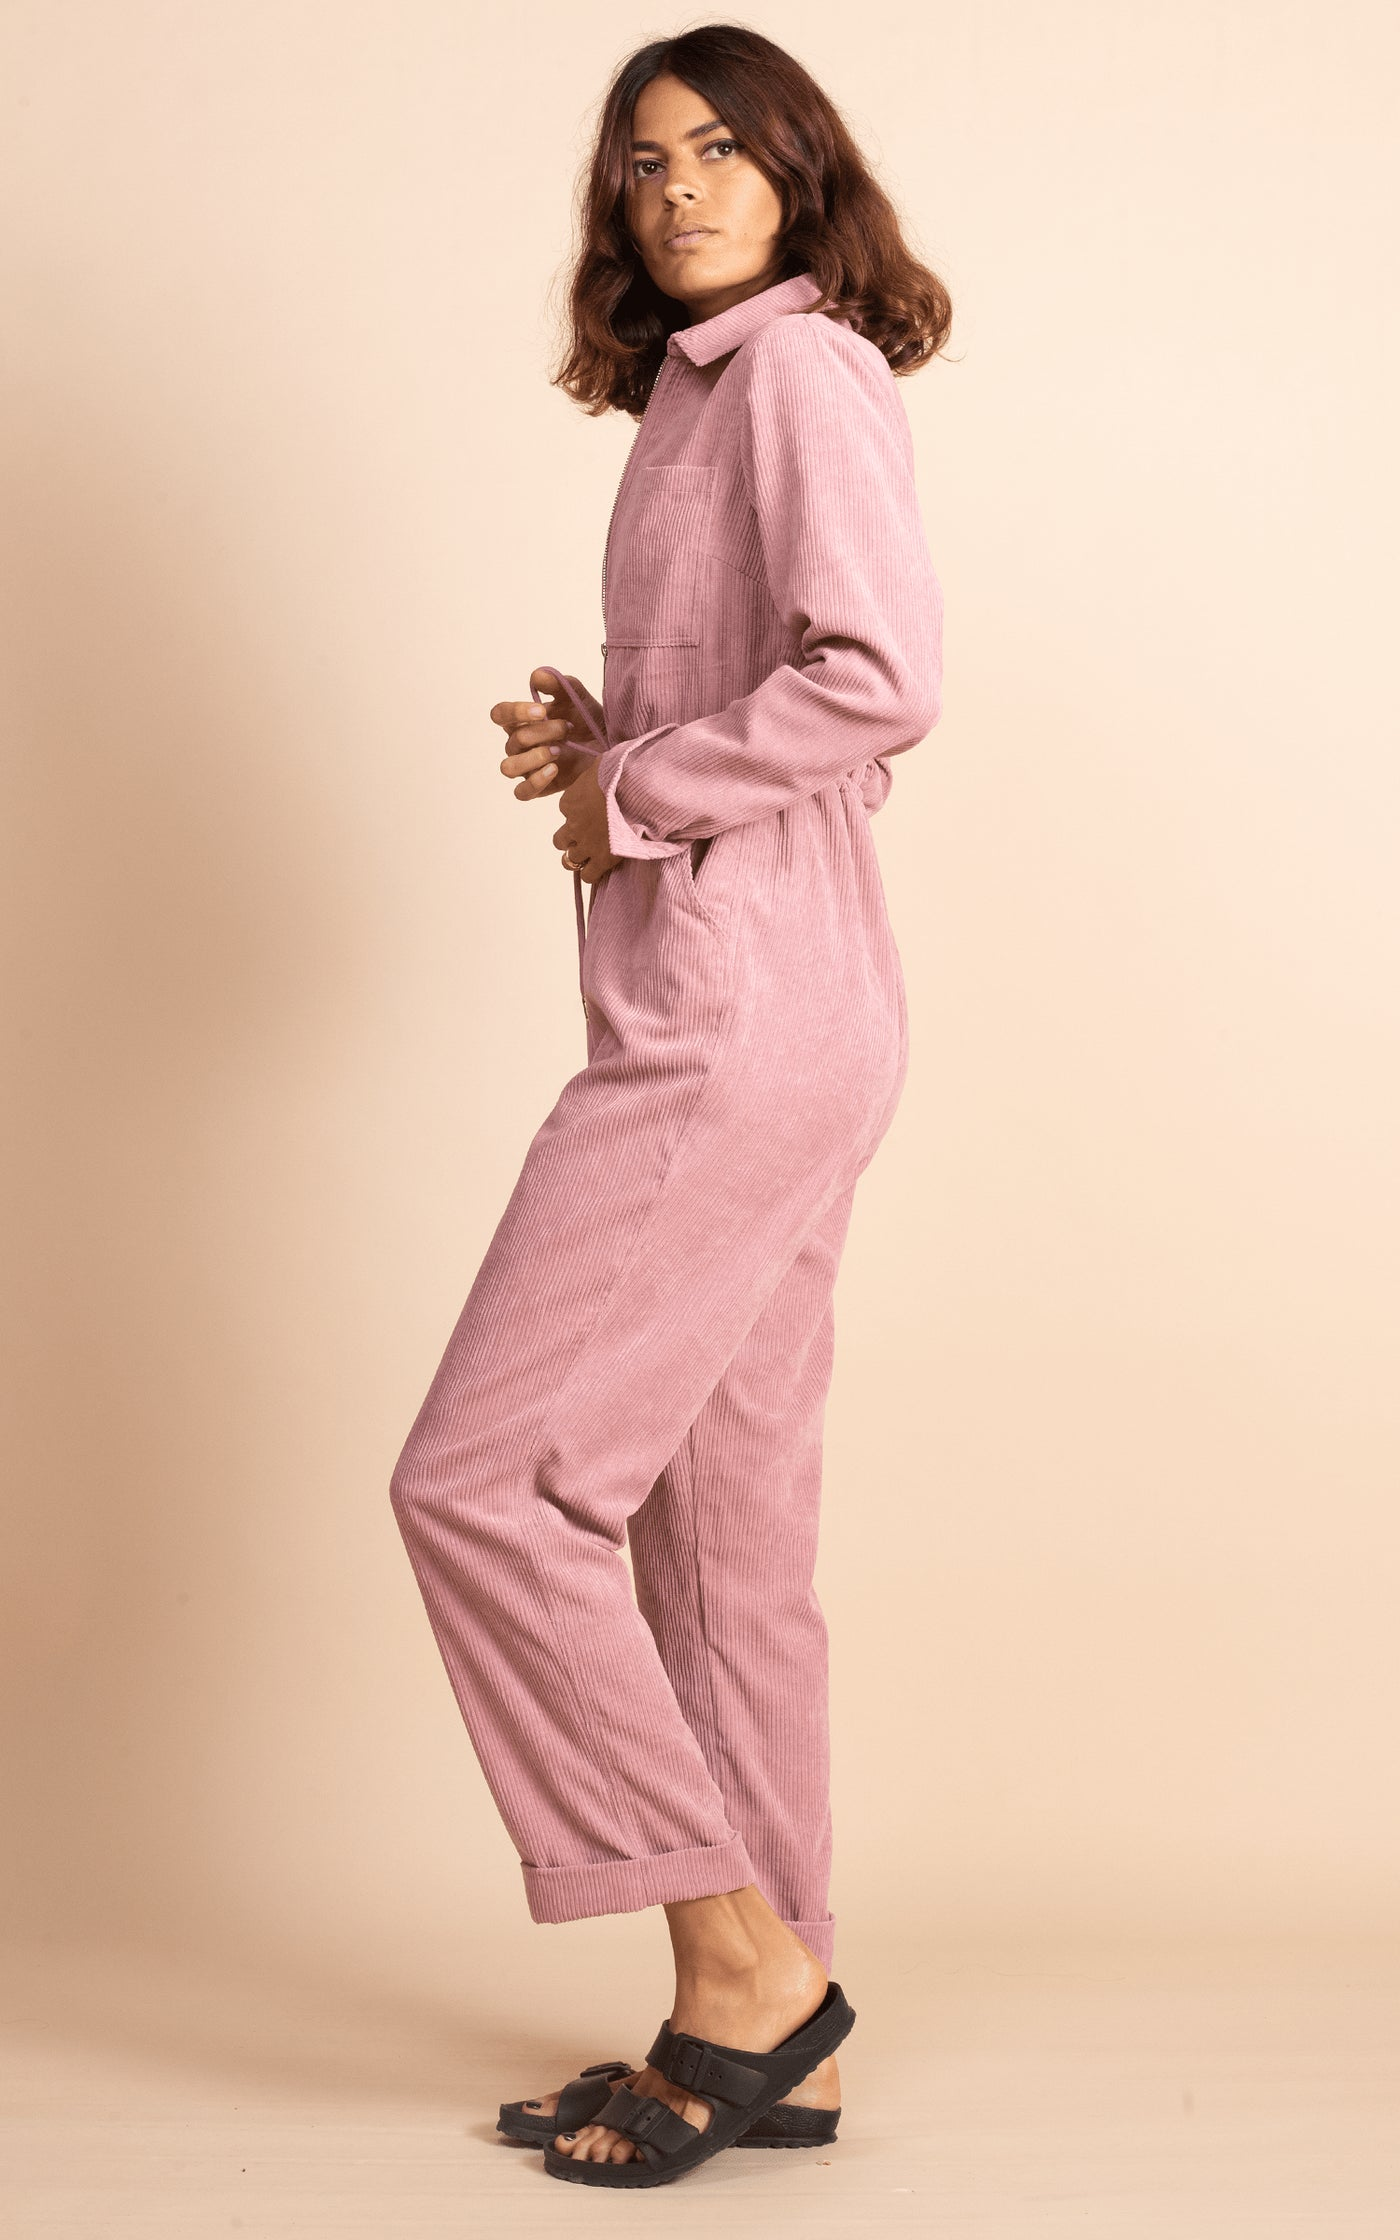 Dancing Leopard model faces side-on wearing Blaze Boilersuit in Rose Pink with sandals